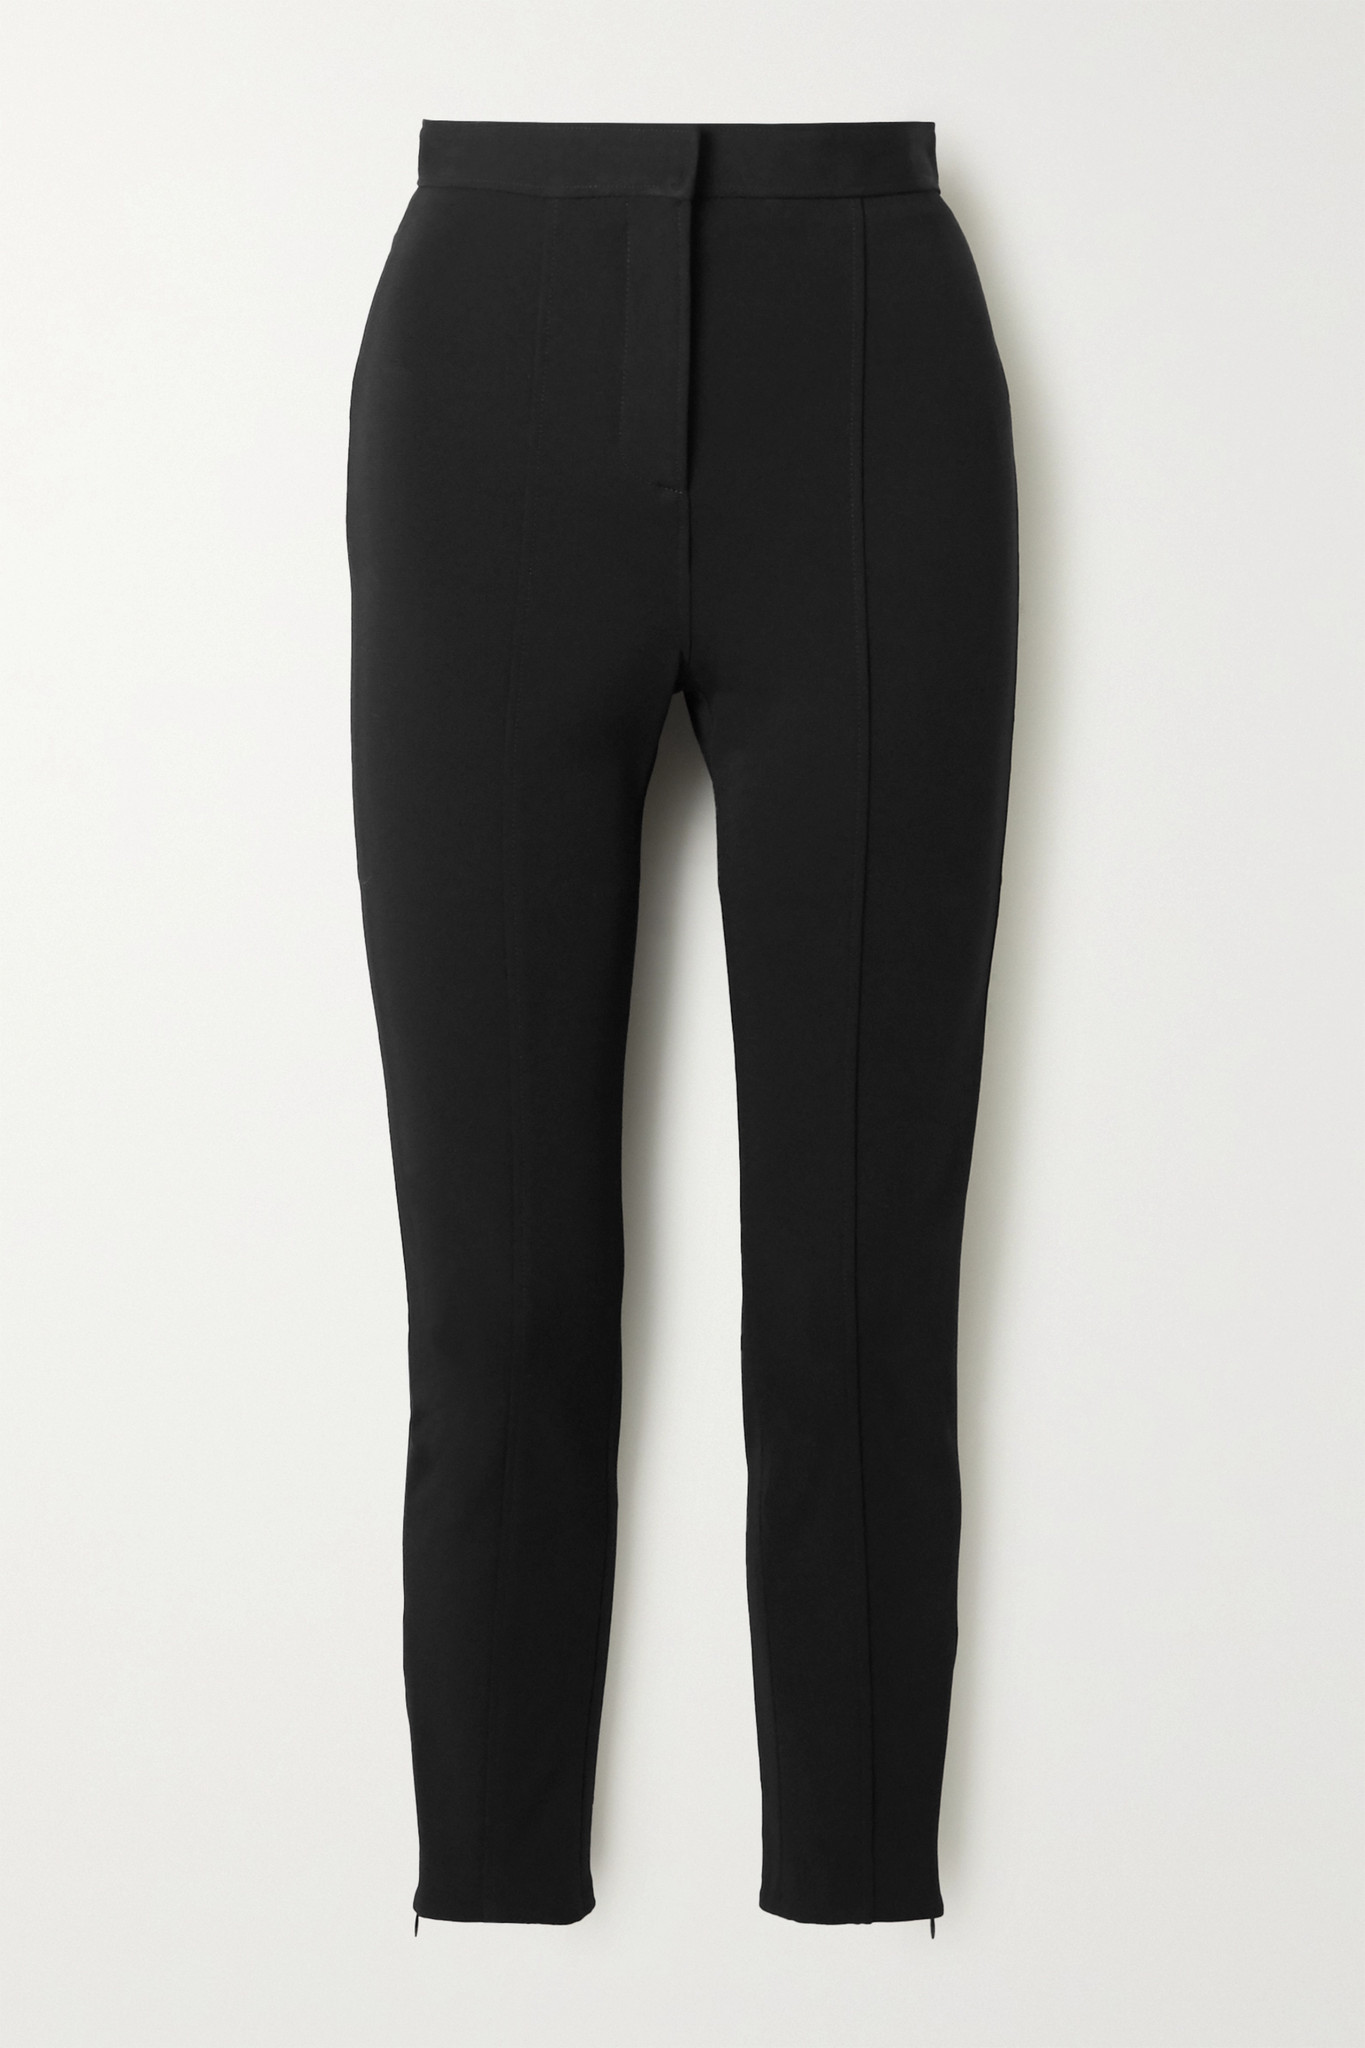 ALTUZARRA - Buddy Stretch-cady Skinny Pants - Black - FR40